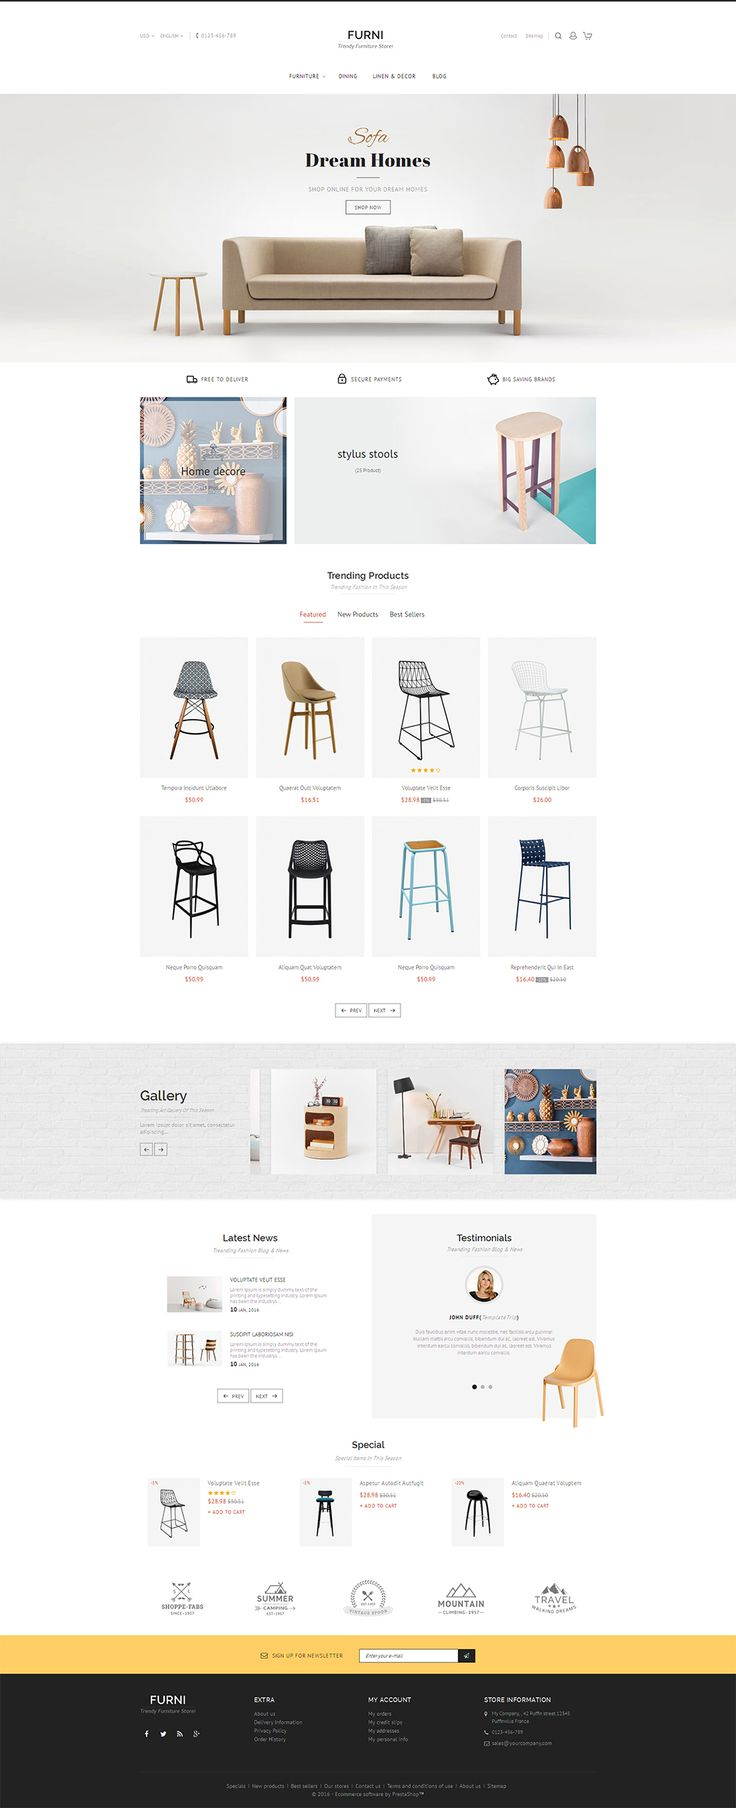 Modern, Furniture, Home Decor, Chairs, Kitchen, Ceramic, Art, Grocery, Accessories, Wood, Toys, Fashion, Apparels, Medicine, Foods, sports, Watch, minimal and multi purpose stores